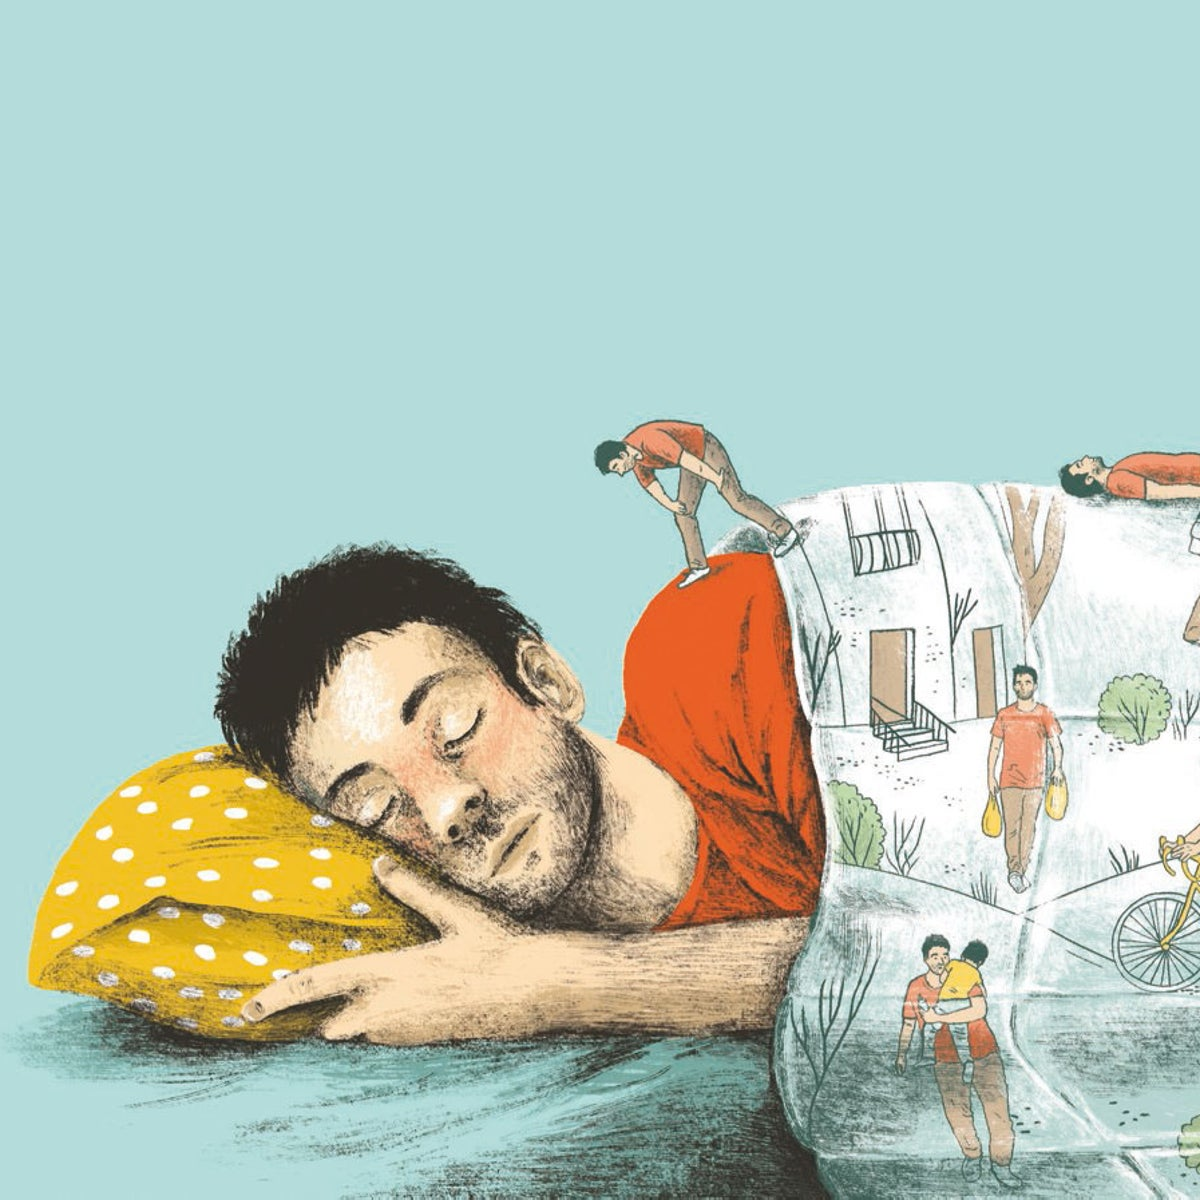 Illustration: A sleeping man